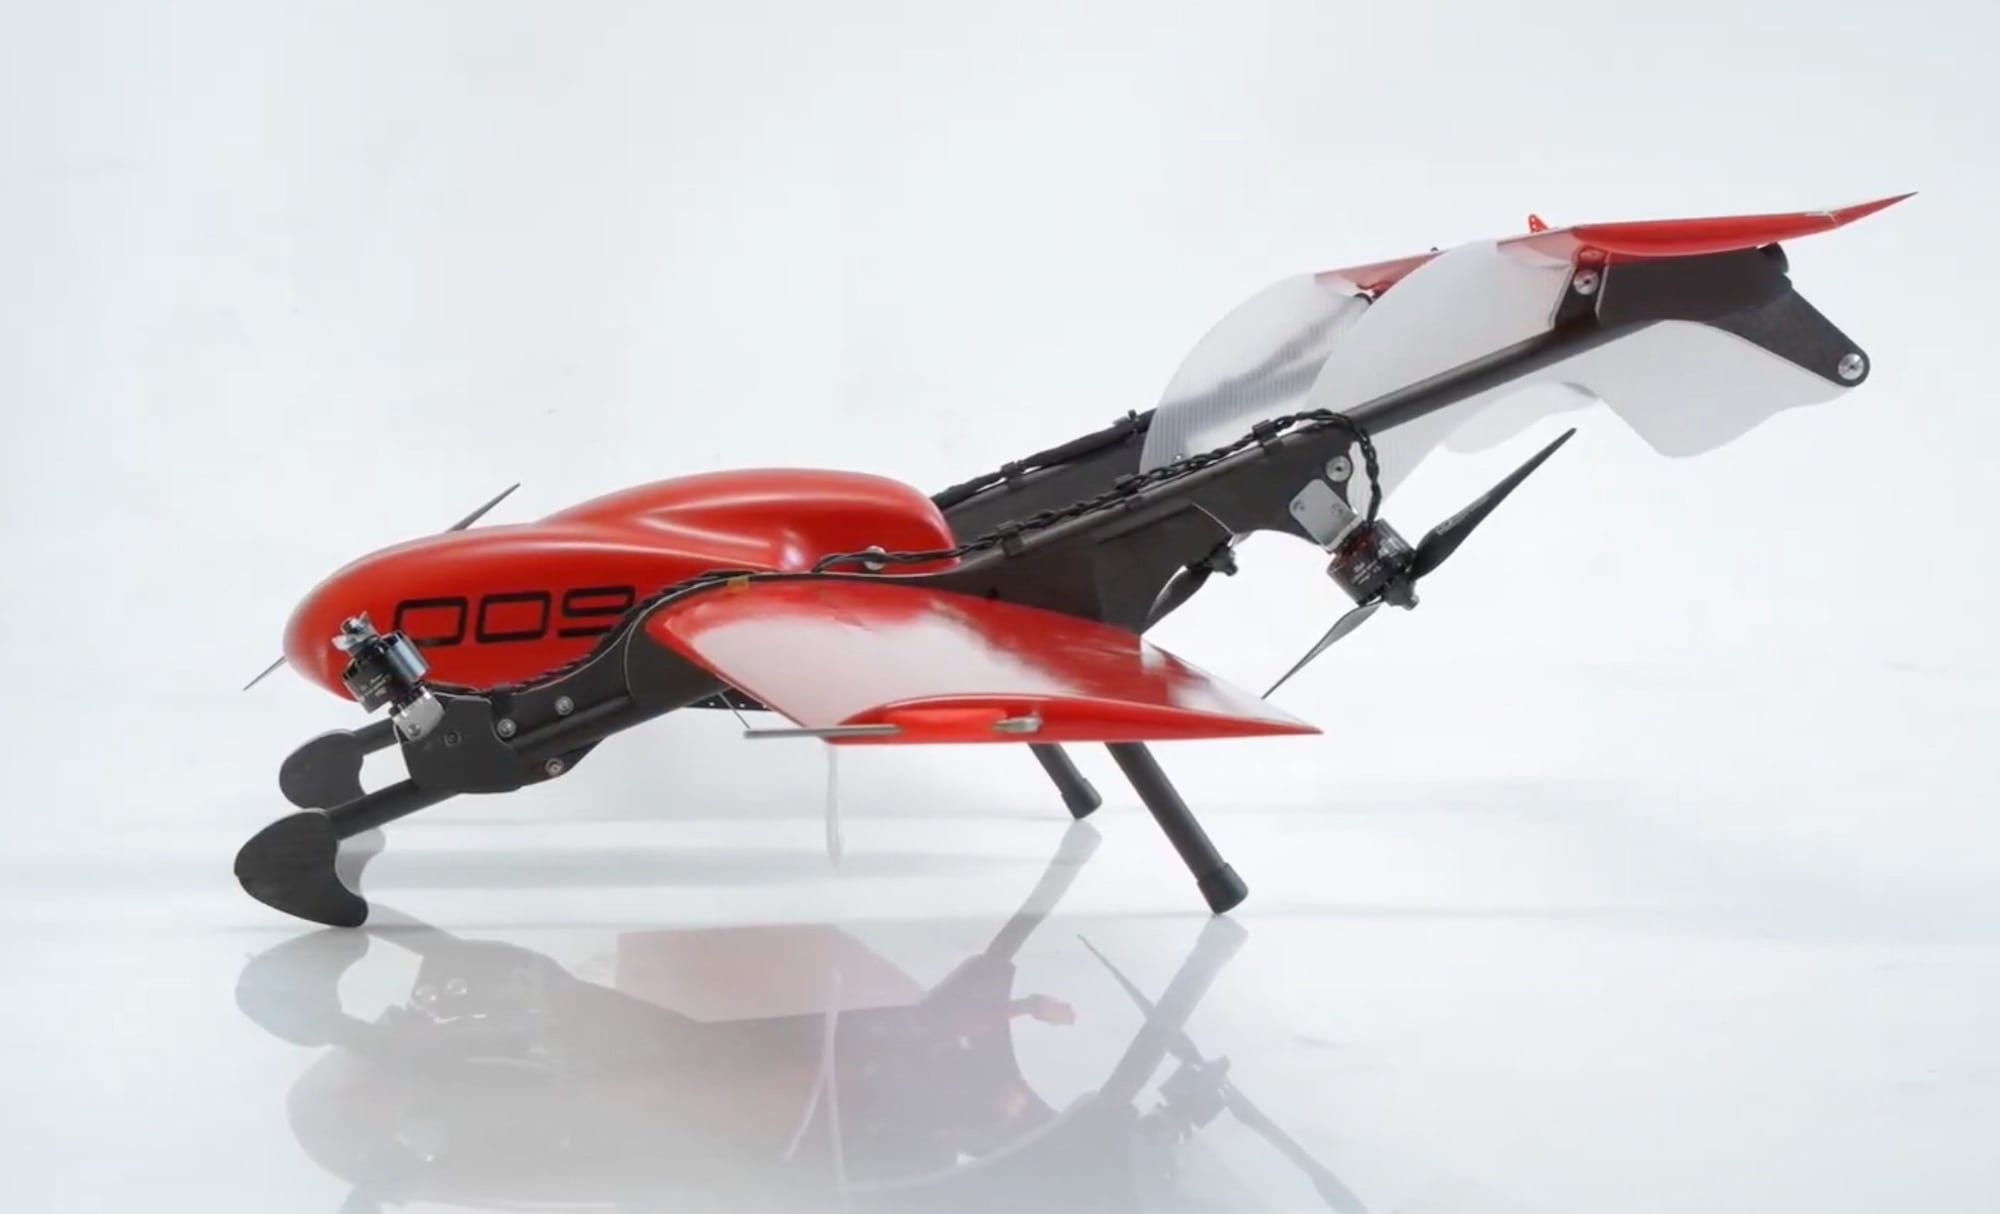 FIXAR – Revolutionary Drone Approved For Advanced Flights in Canada